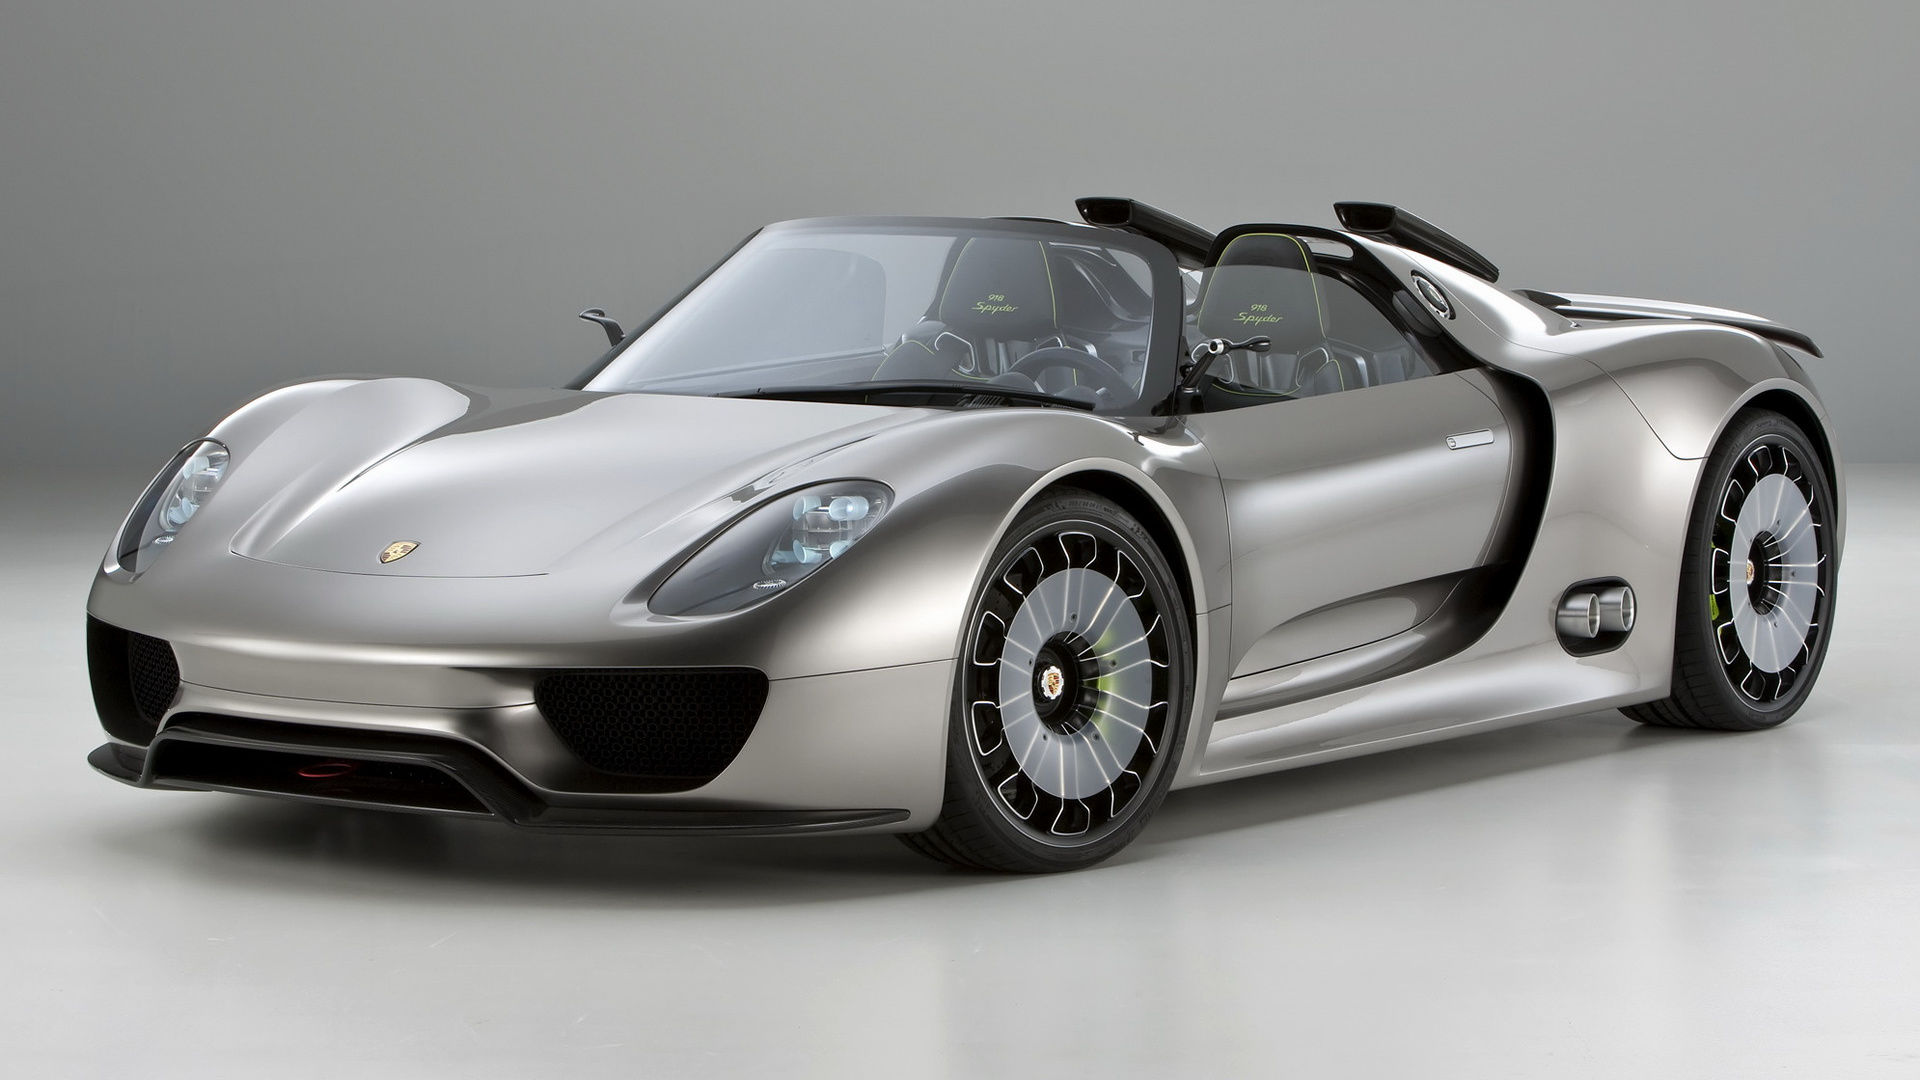 porsche 918 spyder concept 2010 wallpapers and hd images car pixel. Black Bedroom Furniture Sets. Home Design Ideas